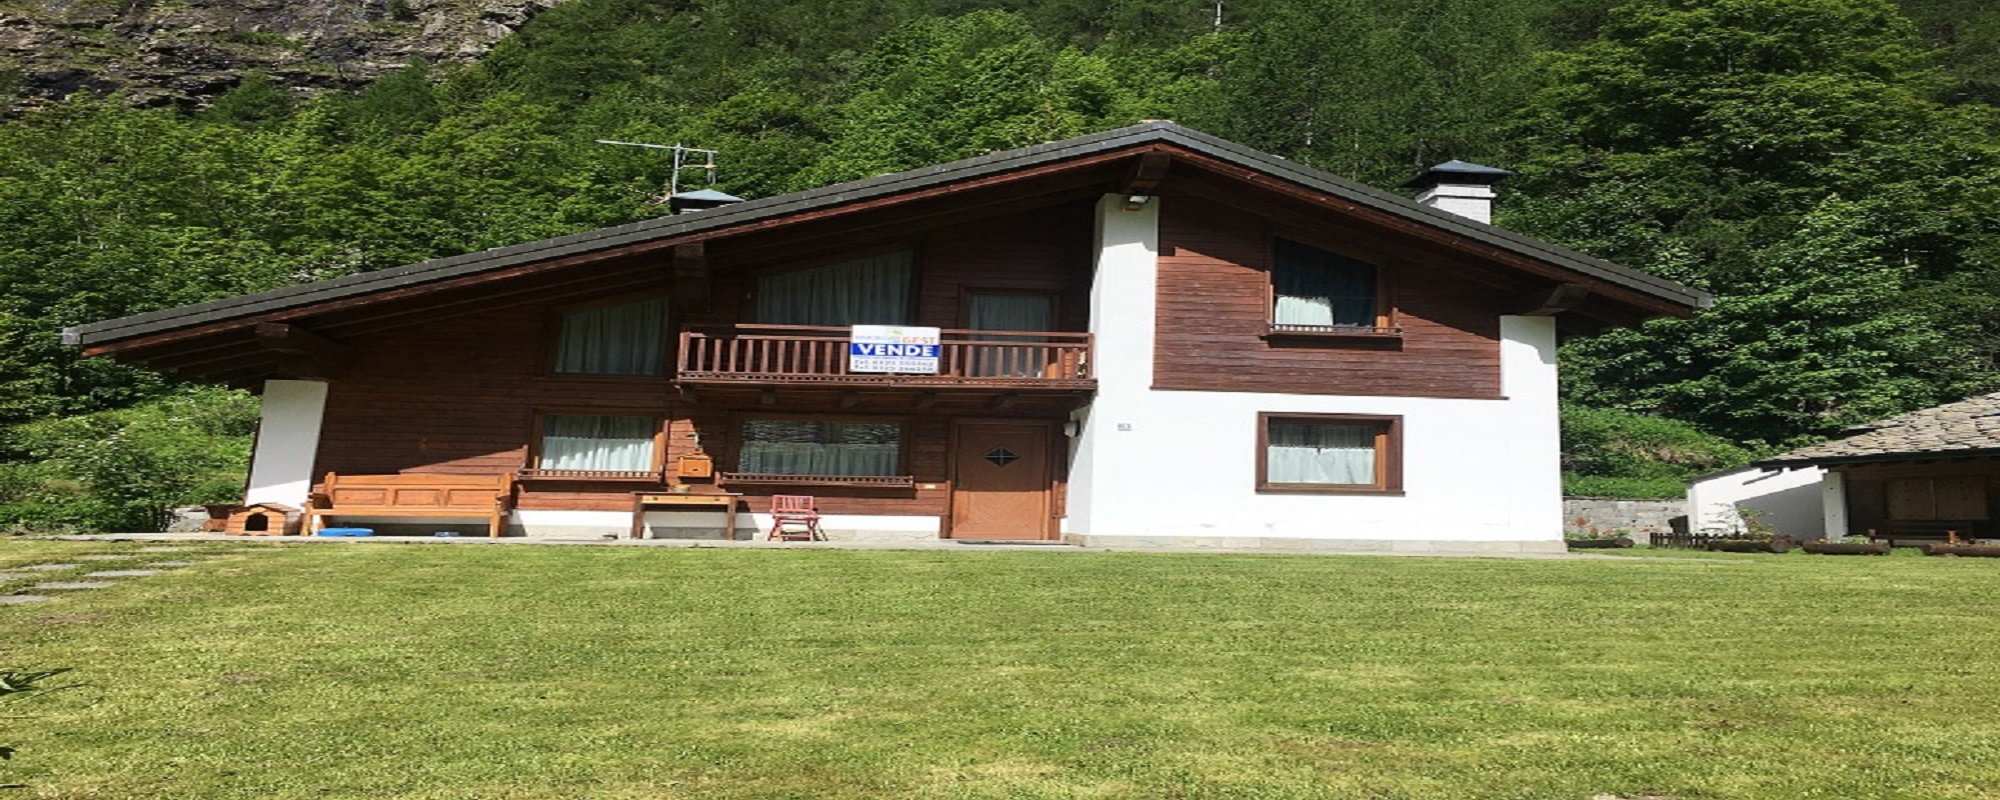 VENDITA VILLA INDIPENDENTE A GRESSONEY LA TRINITE'